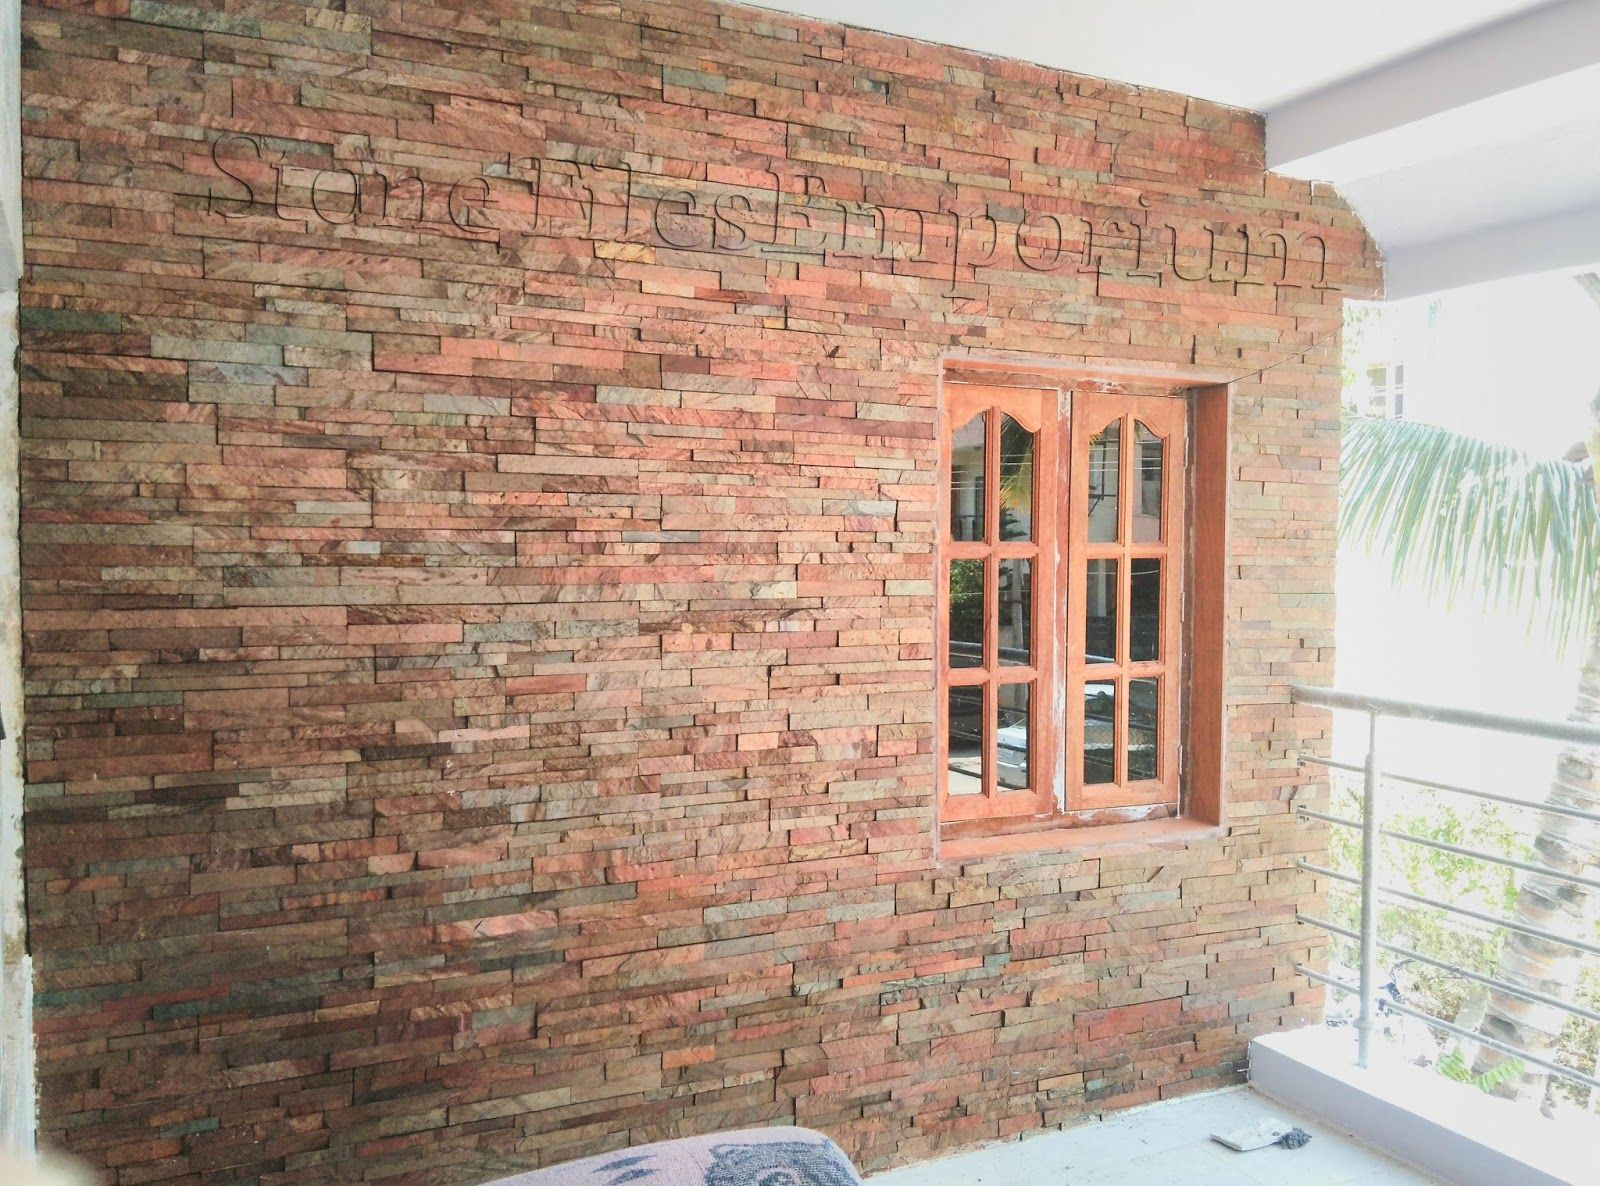 Elevation Stone Tiles Bangalore : Provide a wall cladding natural stones in bangalore india